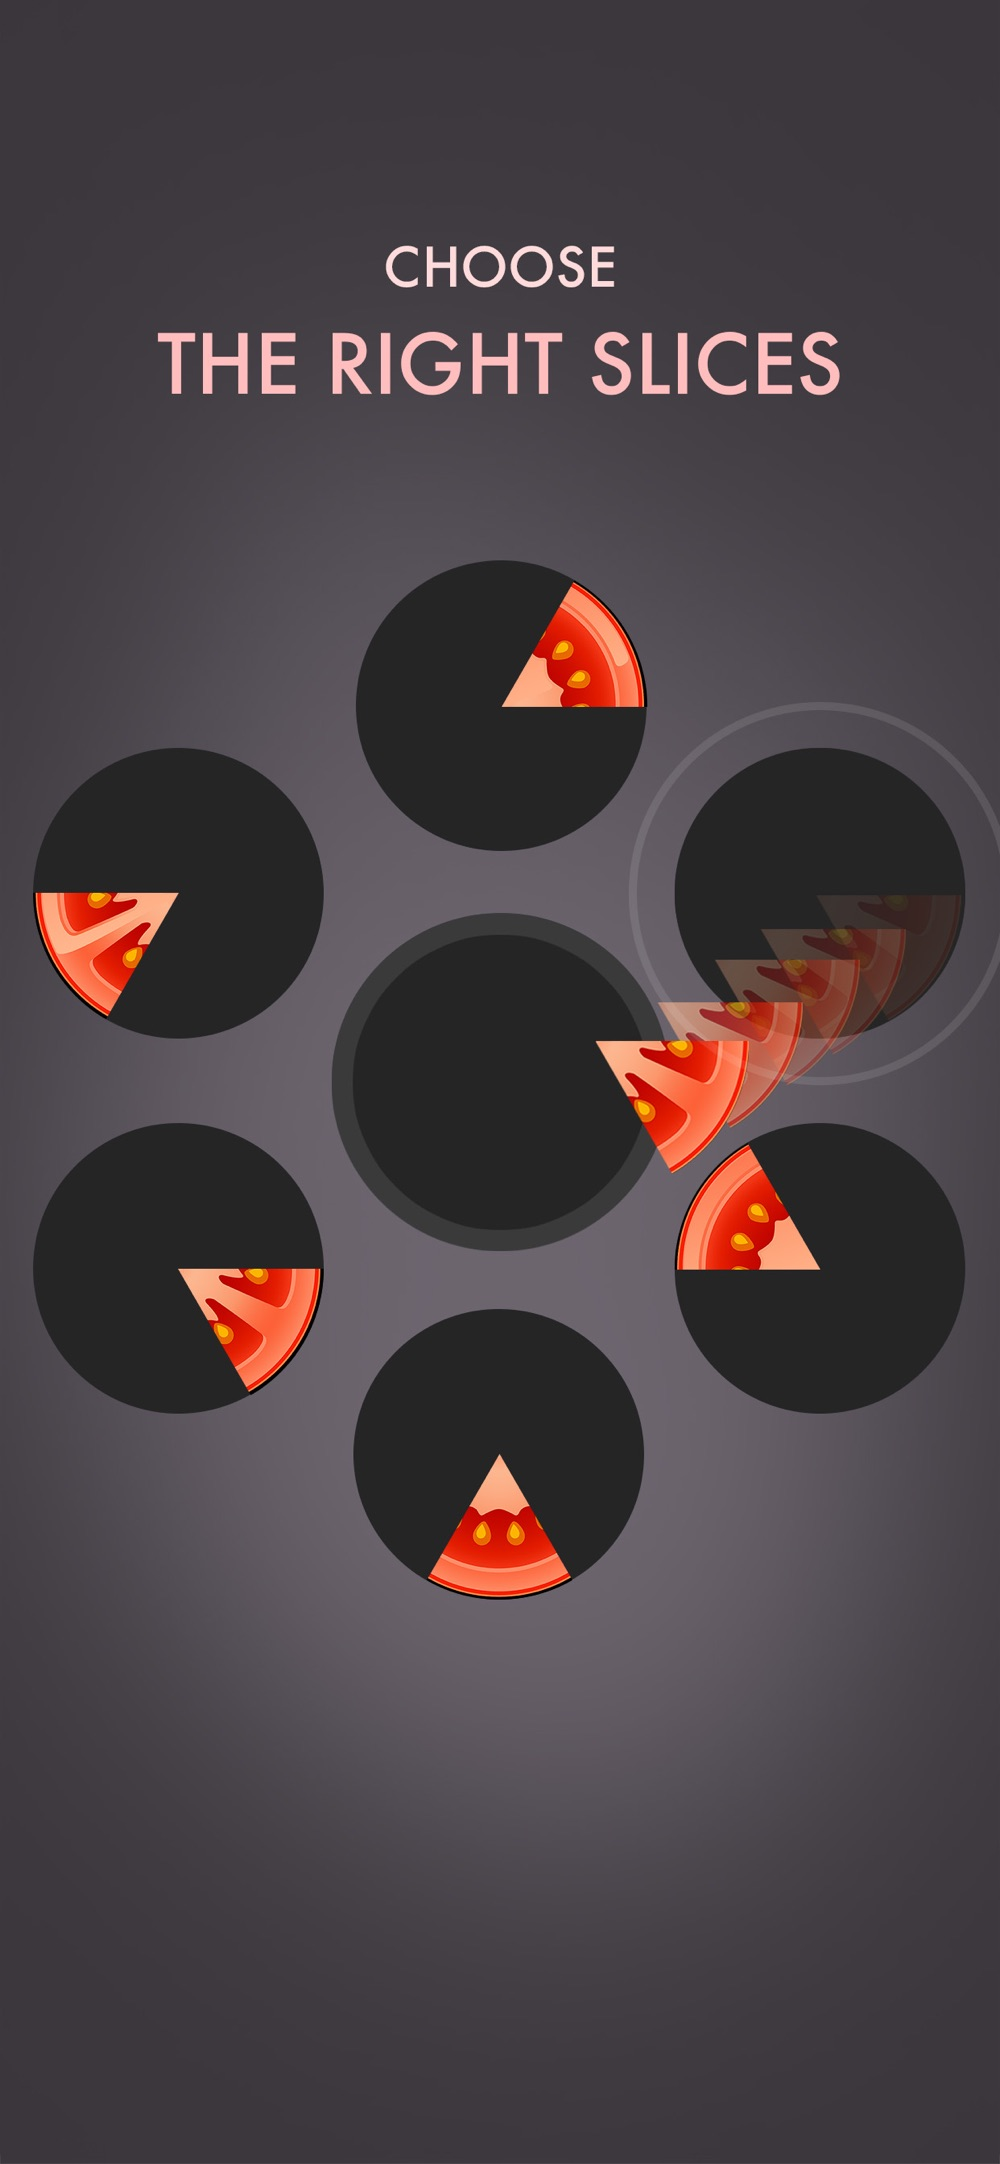 Slices Puzzle- Relaxing Game Cheat Codes